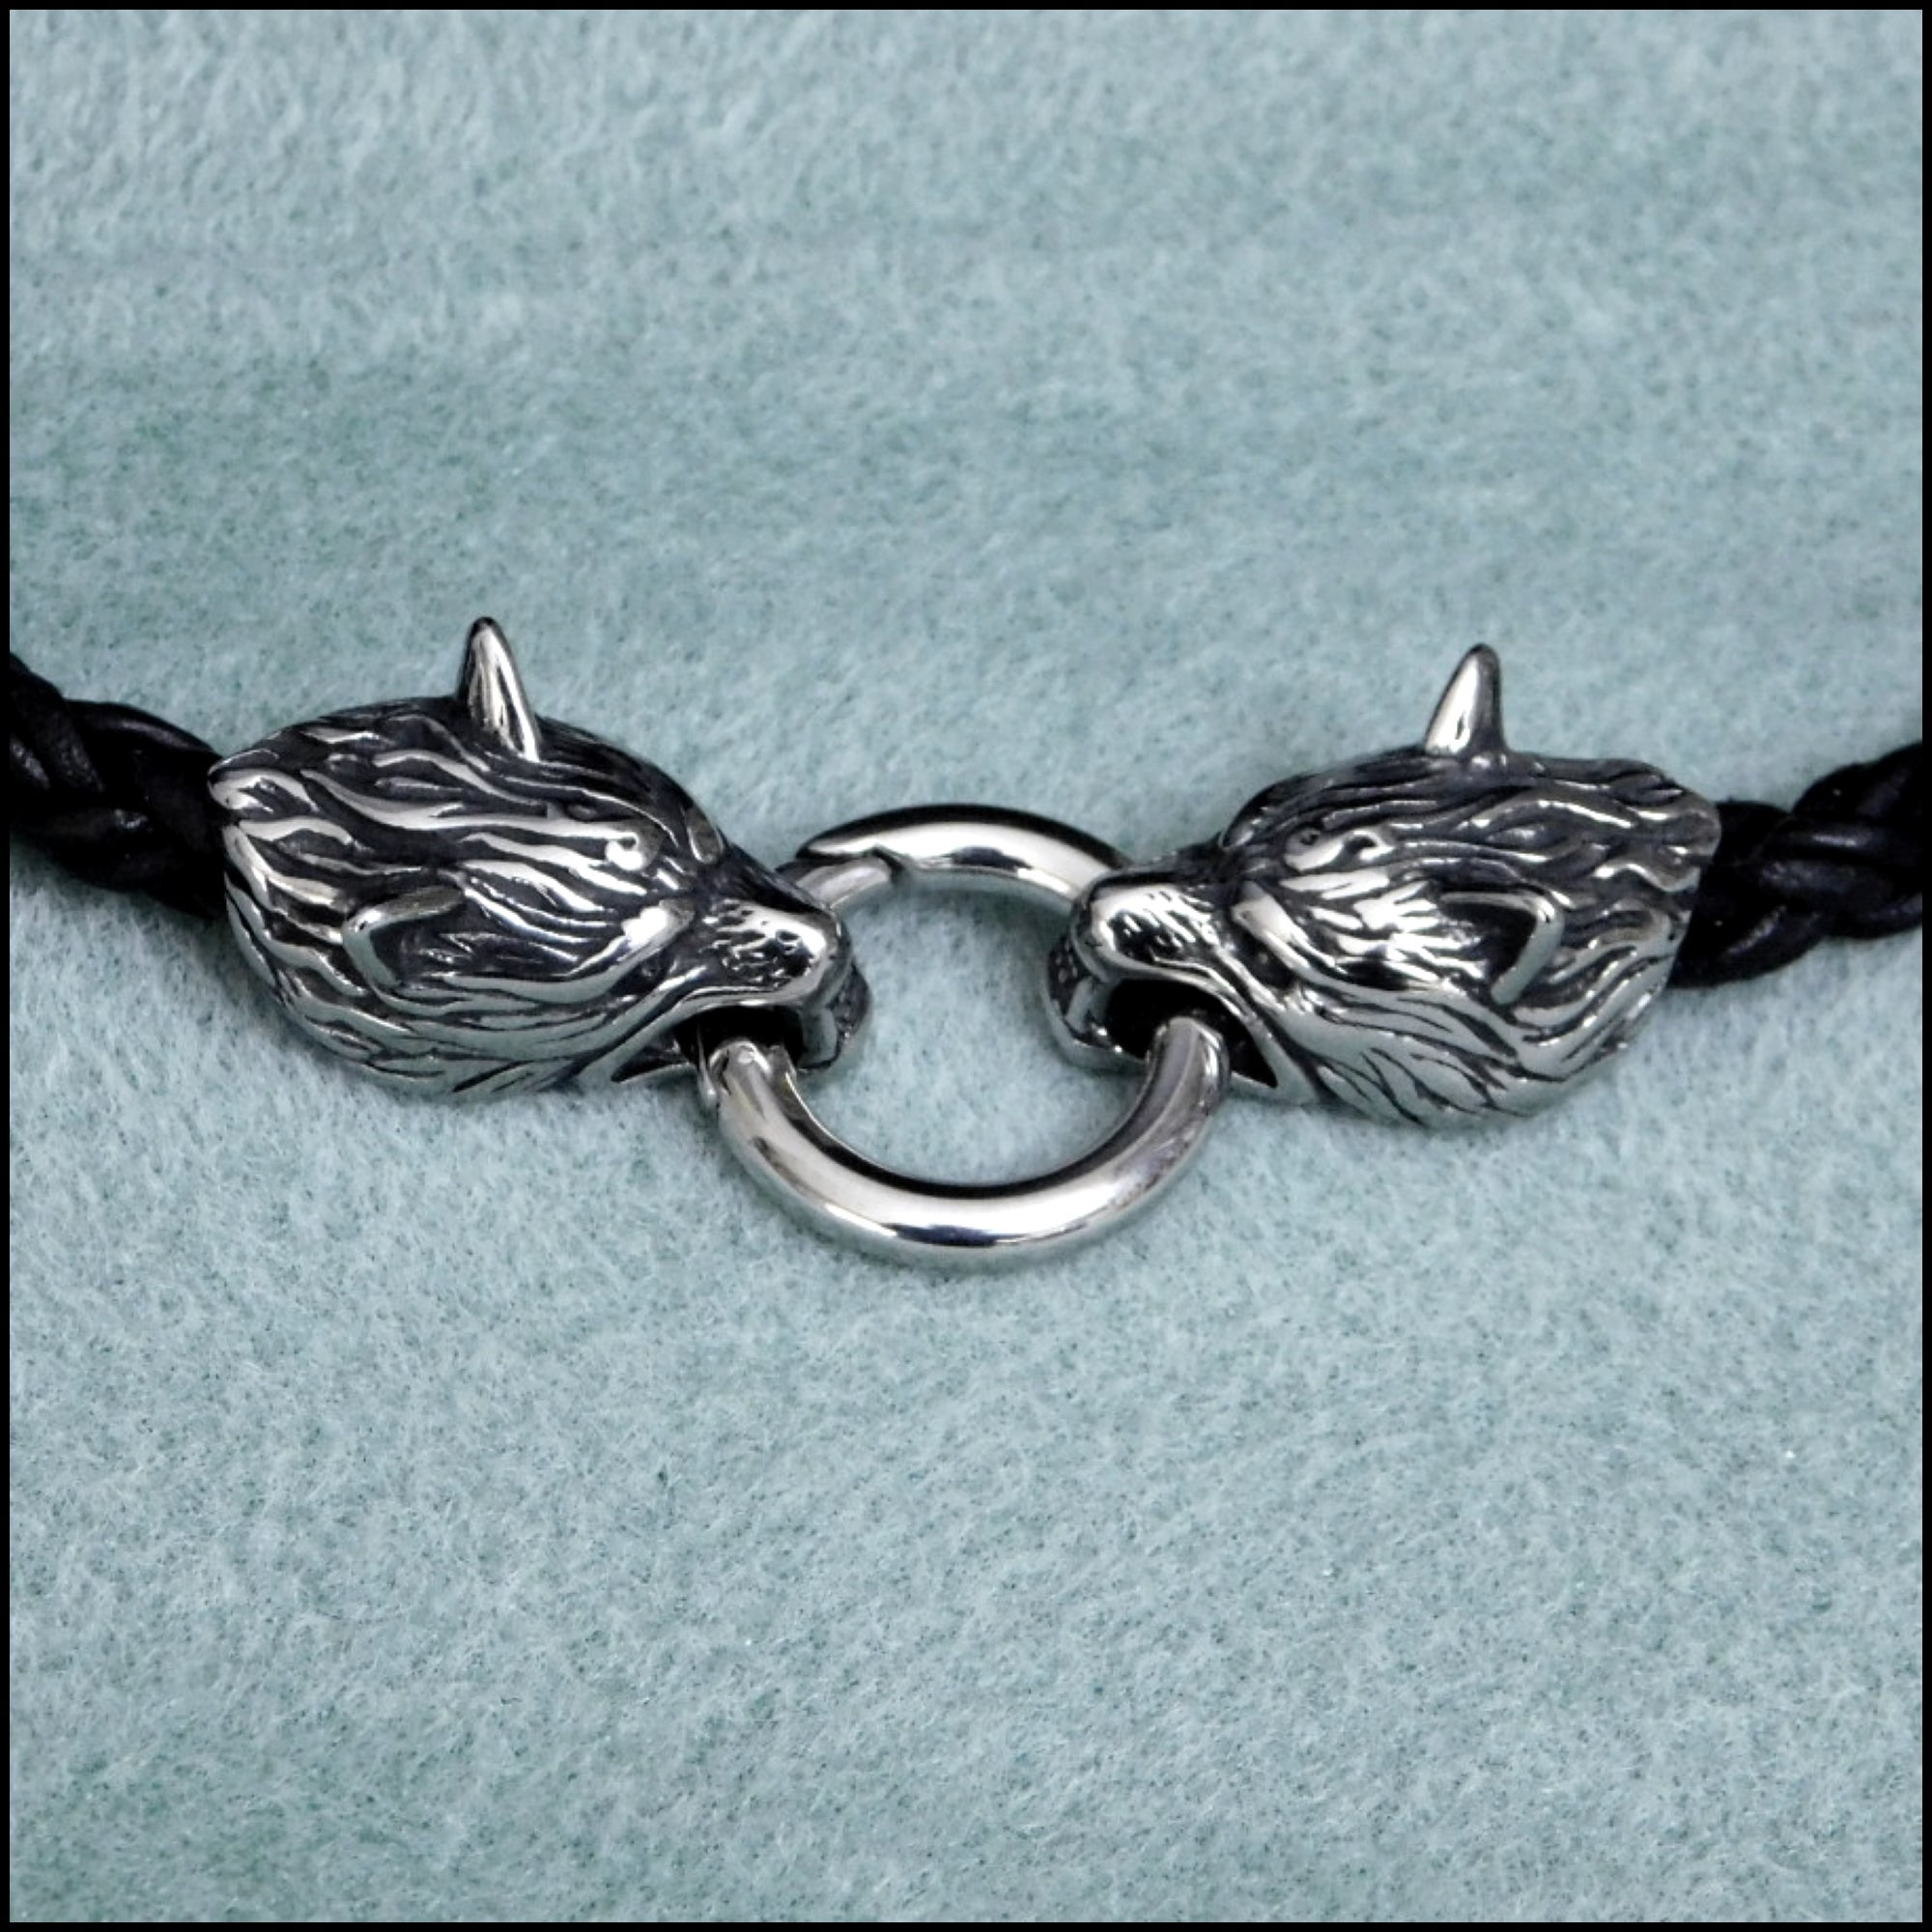 Snarling Guardian Wolves Tribal Braid Leather Cord Necklace with Spring Ring Front Connector